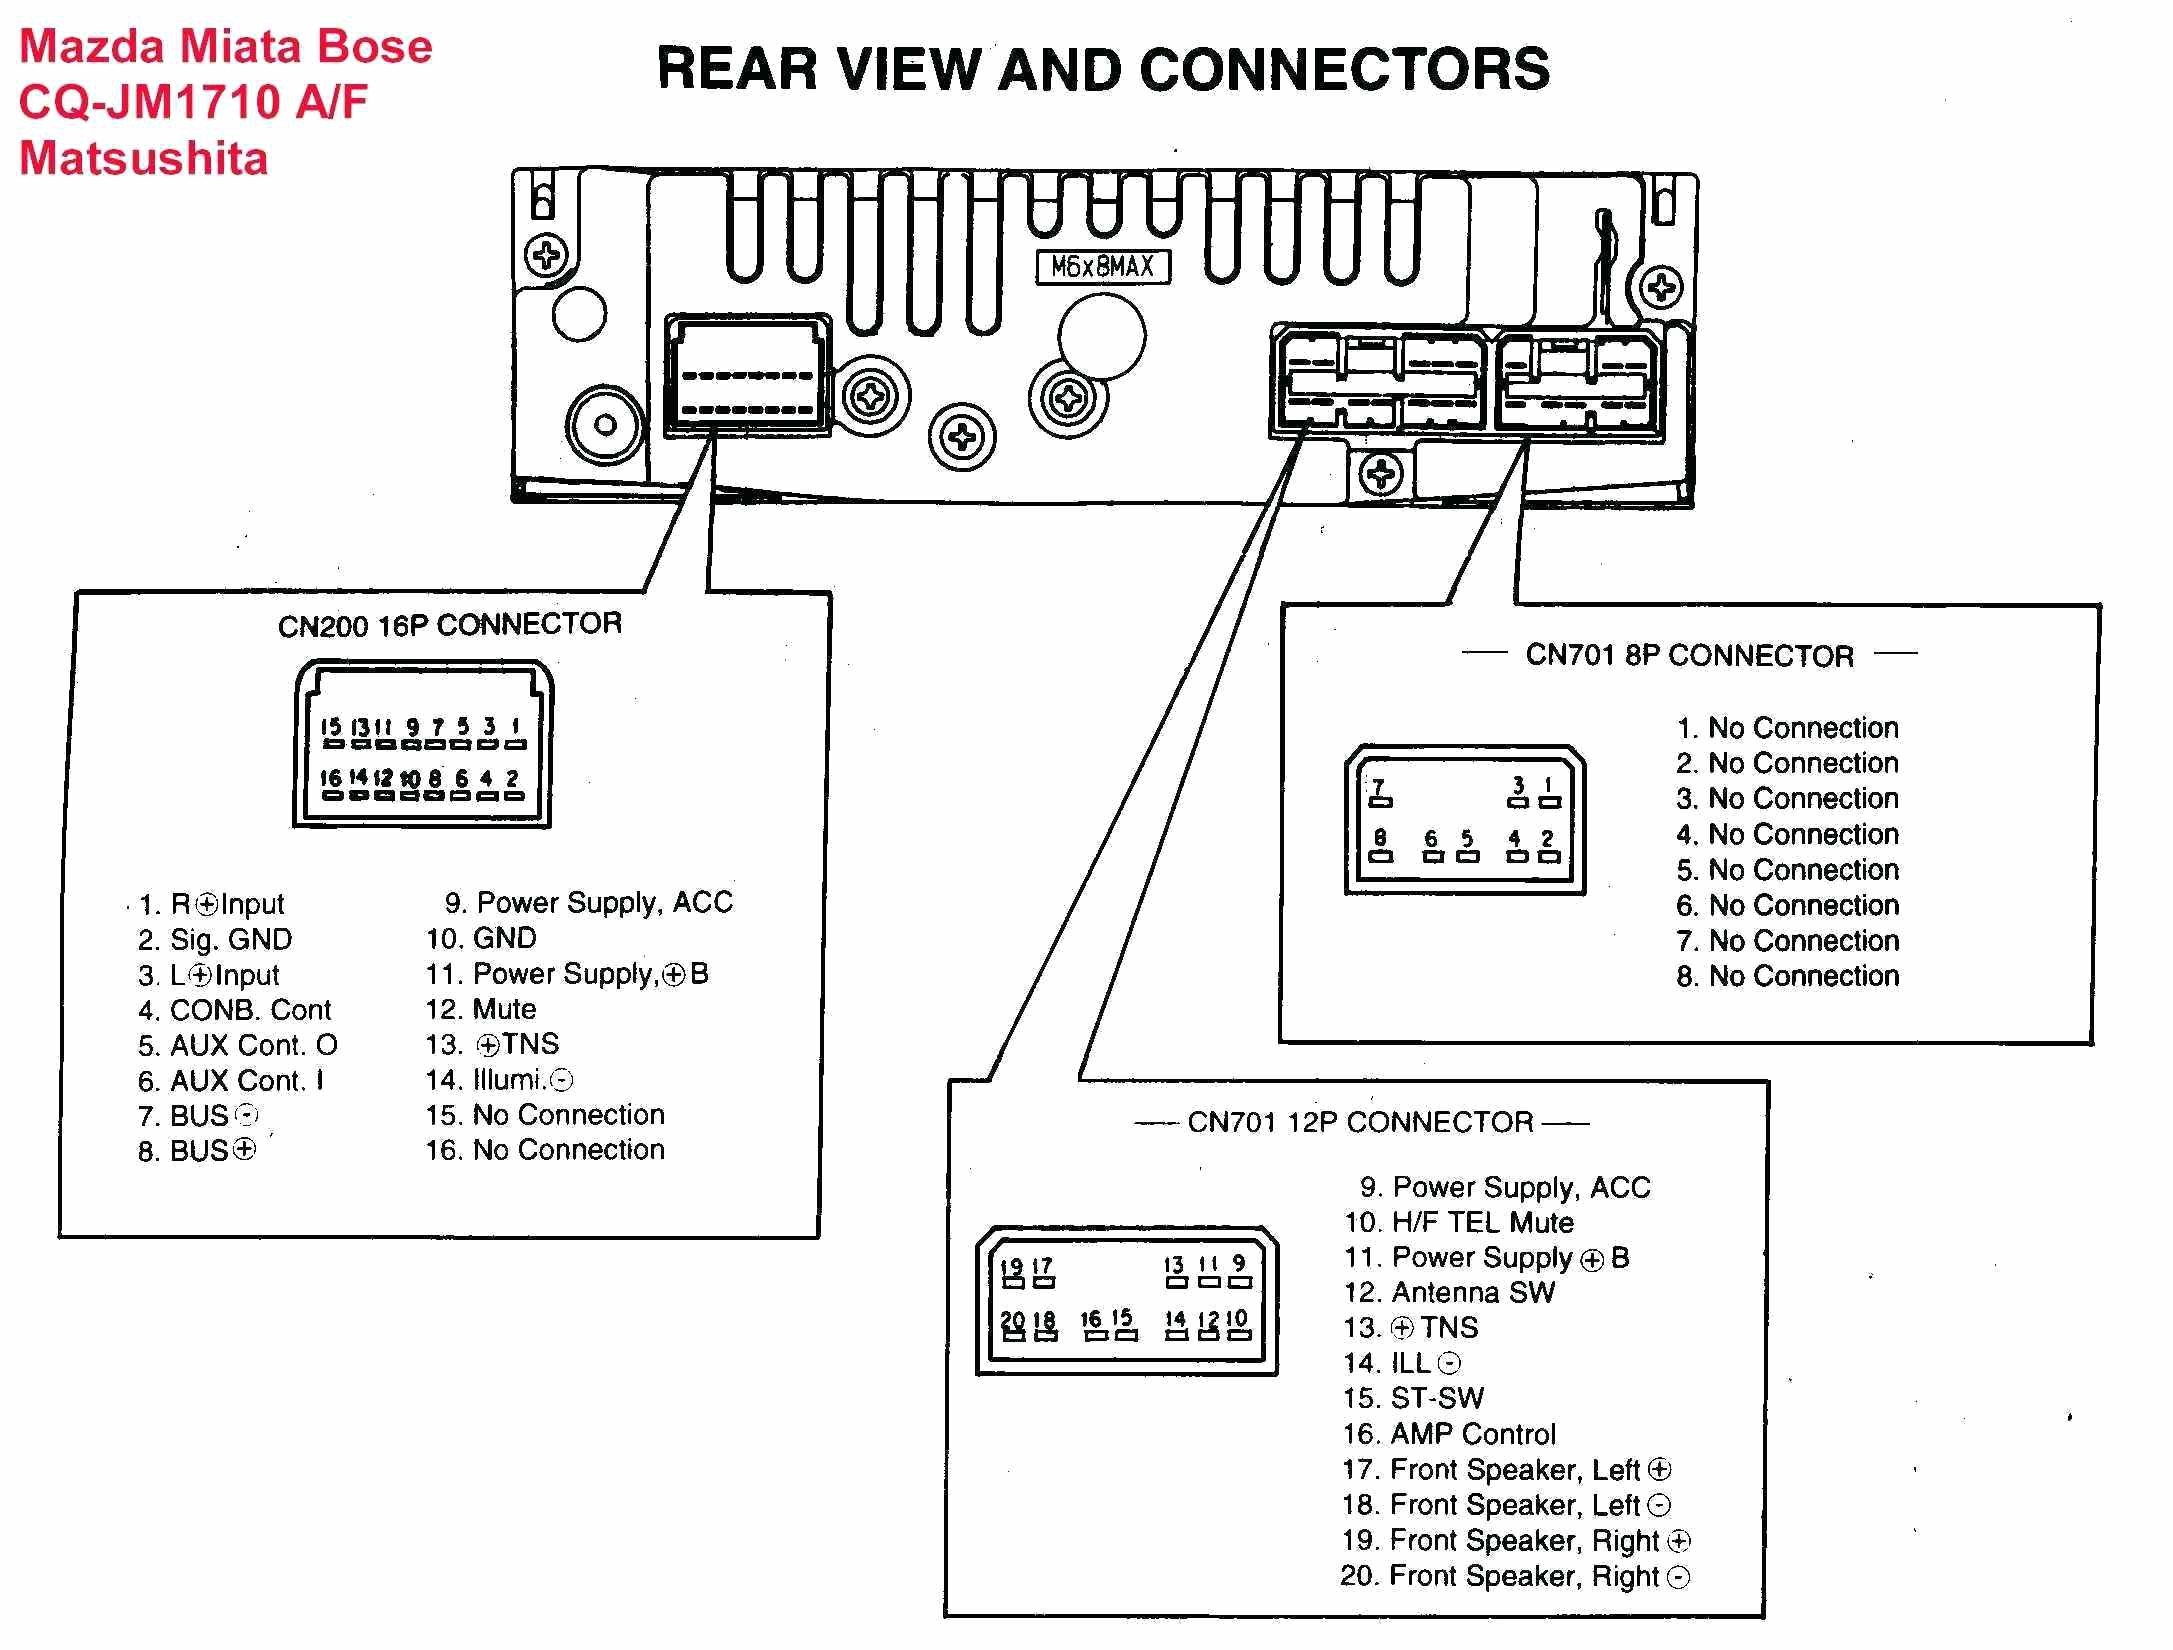 boss snow plow wiring diagram Download-Boss Plow Wiring Diagram New Boss Snow Plow Wiring Diagram Unique 16-l